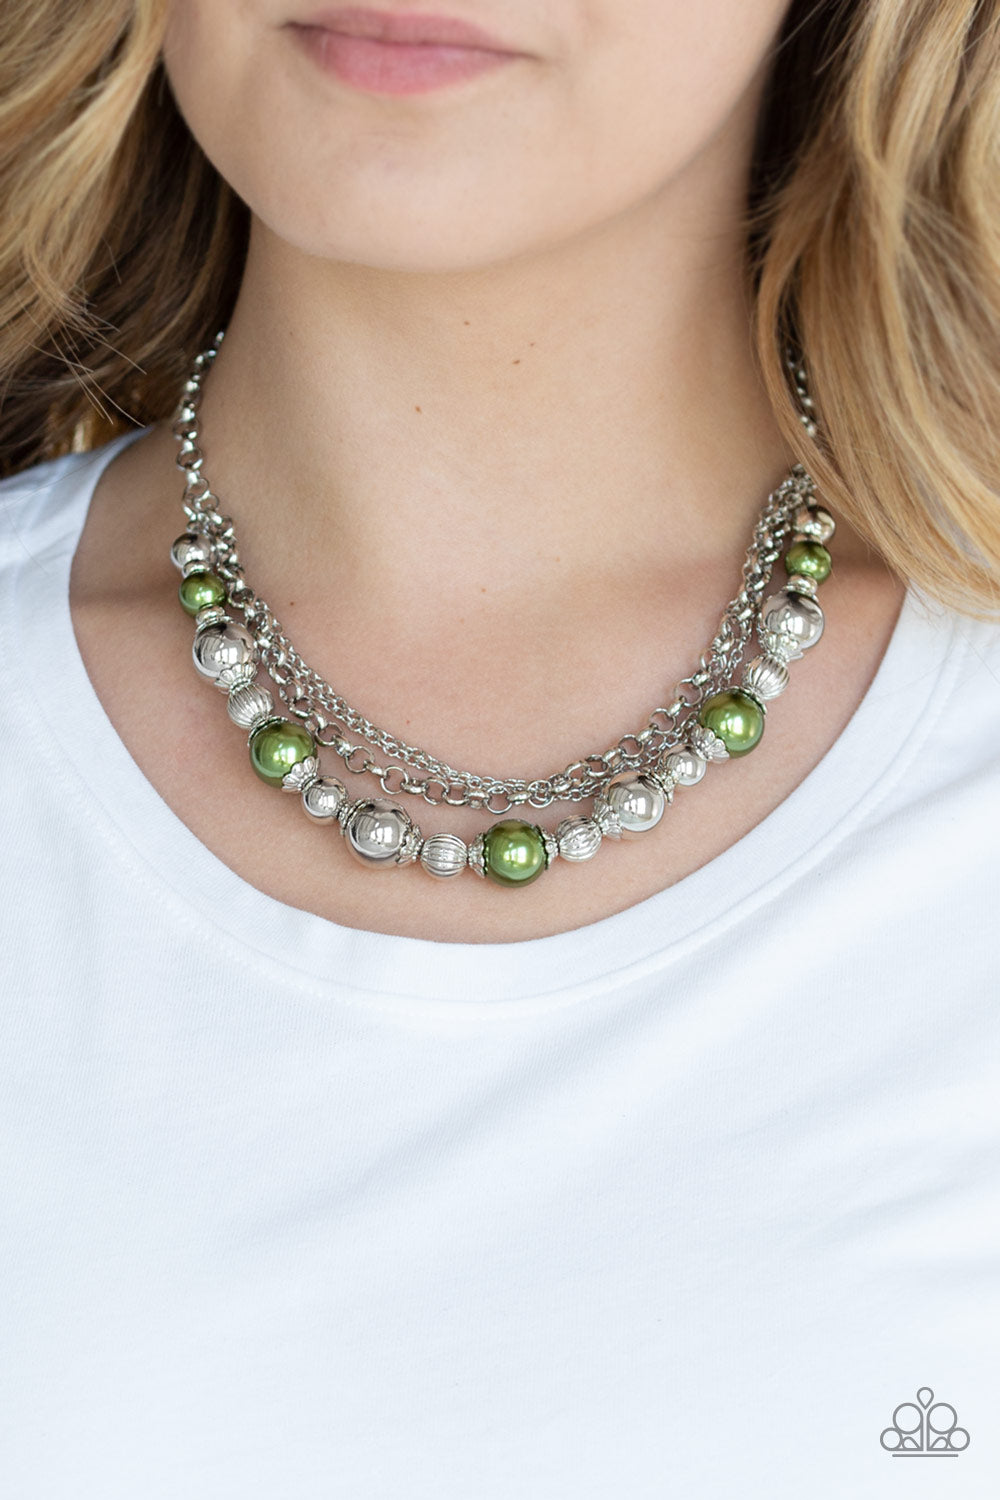 5th Avenue Romance - Green Necklace Paparazzi Accessories New